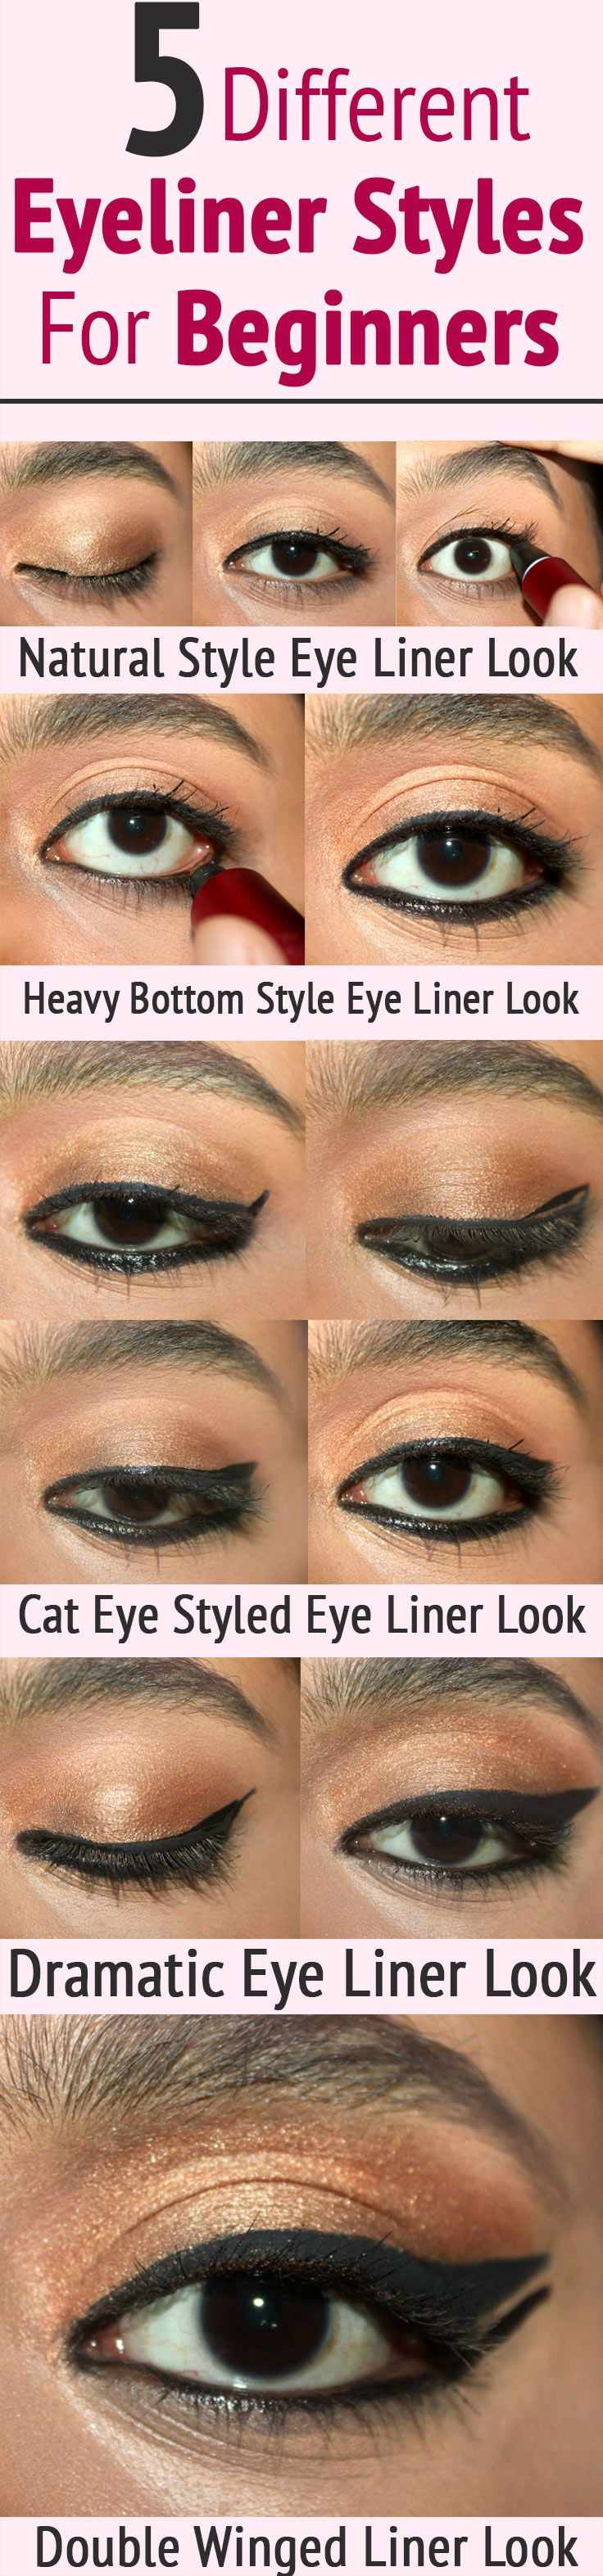 5 Different Eyeliner Styles For Beginners – Tutorial With Detailed Steps And Pictures